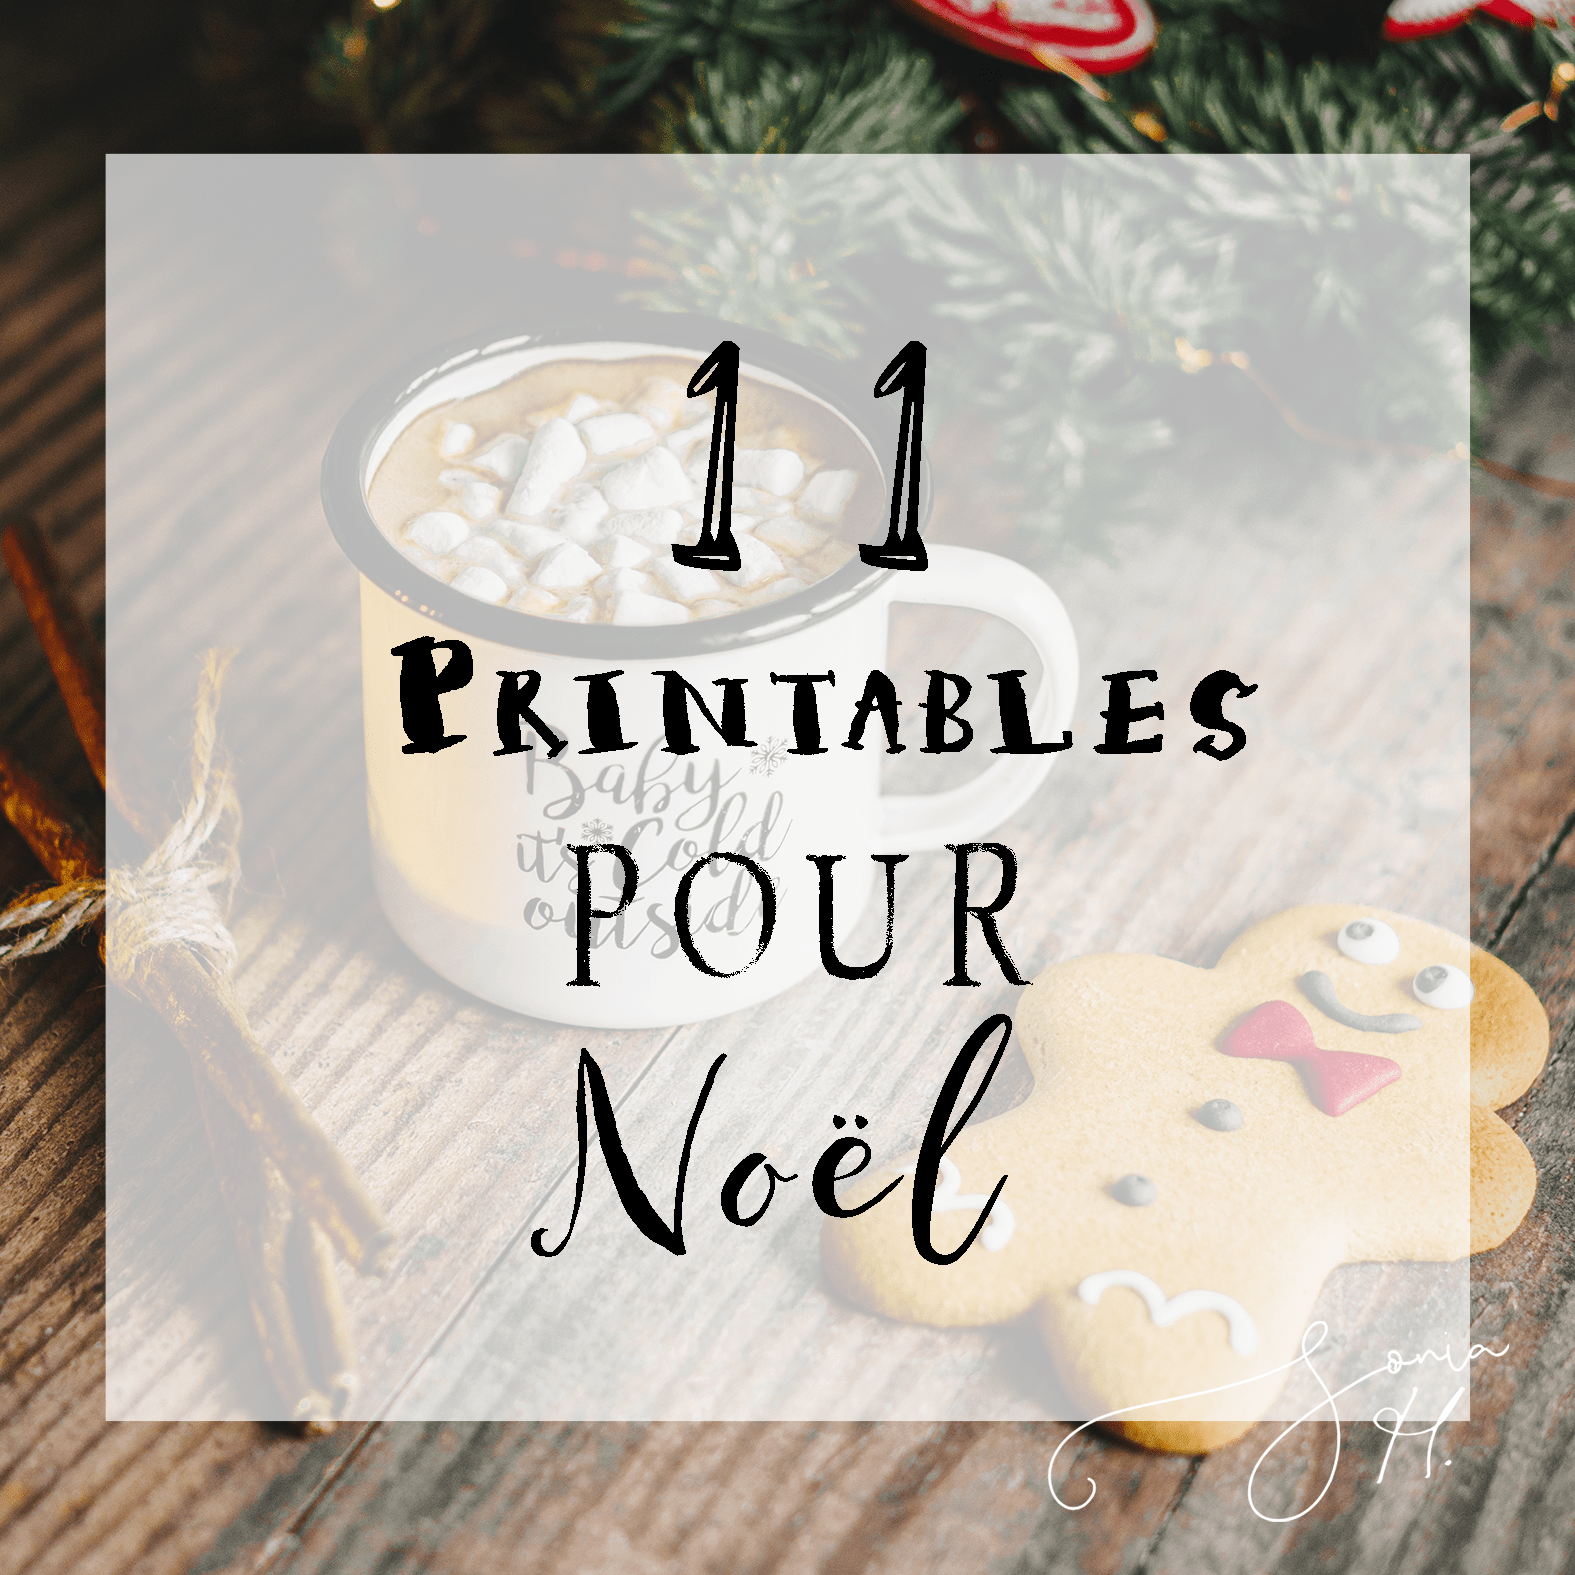 11 Printables pour Noël (Freebies Inside).